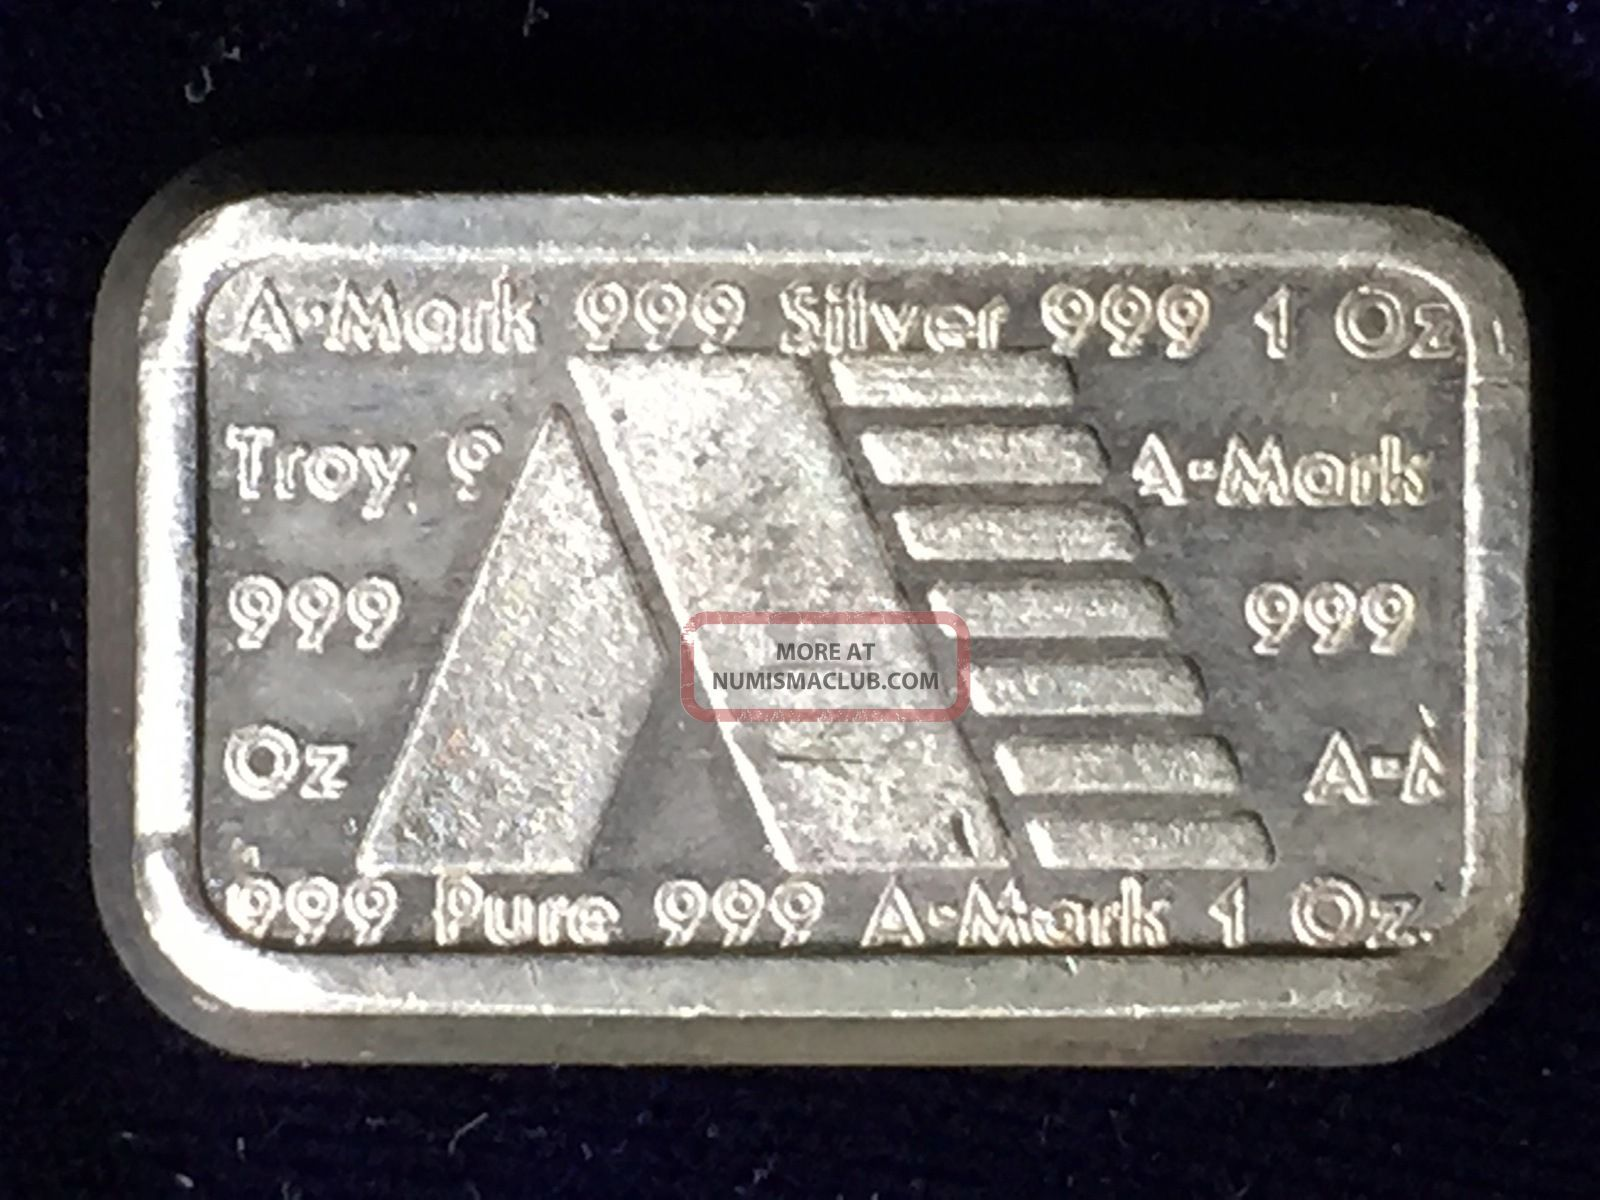 Usvi Ingot Co A Mark Commercial Bar 1981 1 Troy Oz